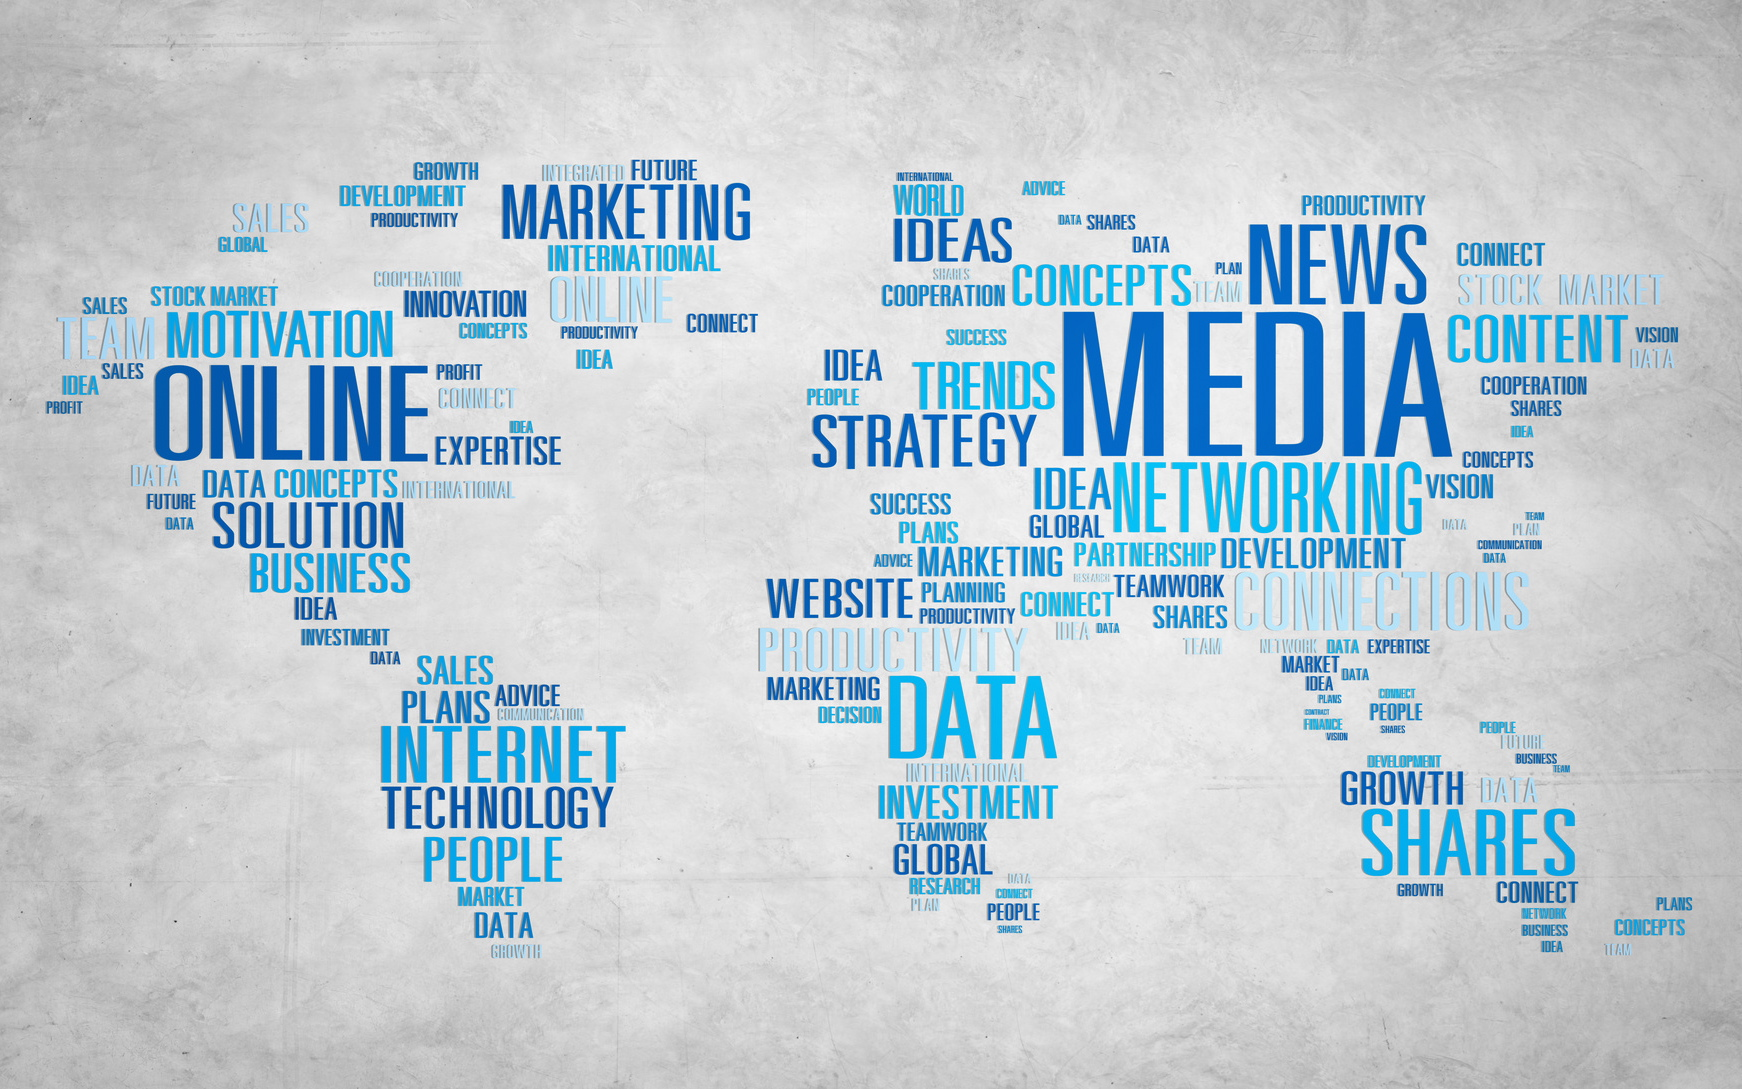 Merge social media and content marketing into one strategic plan.